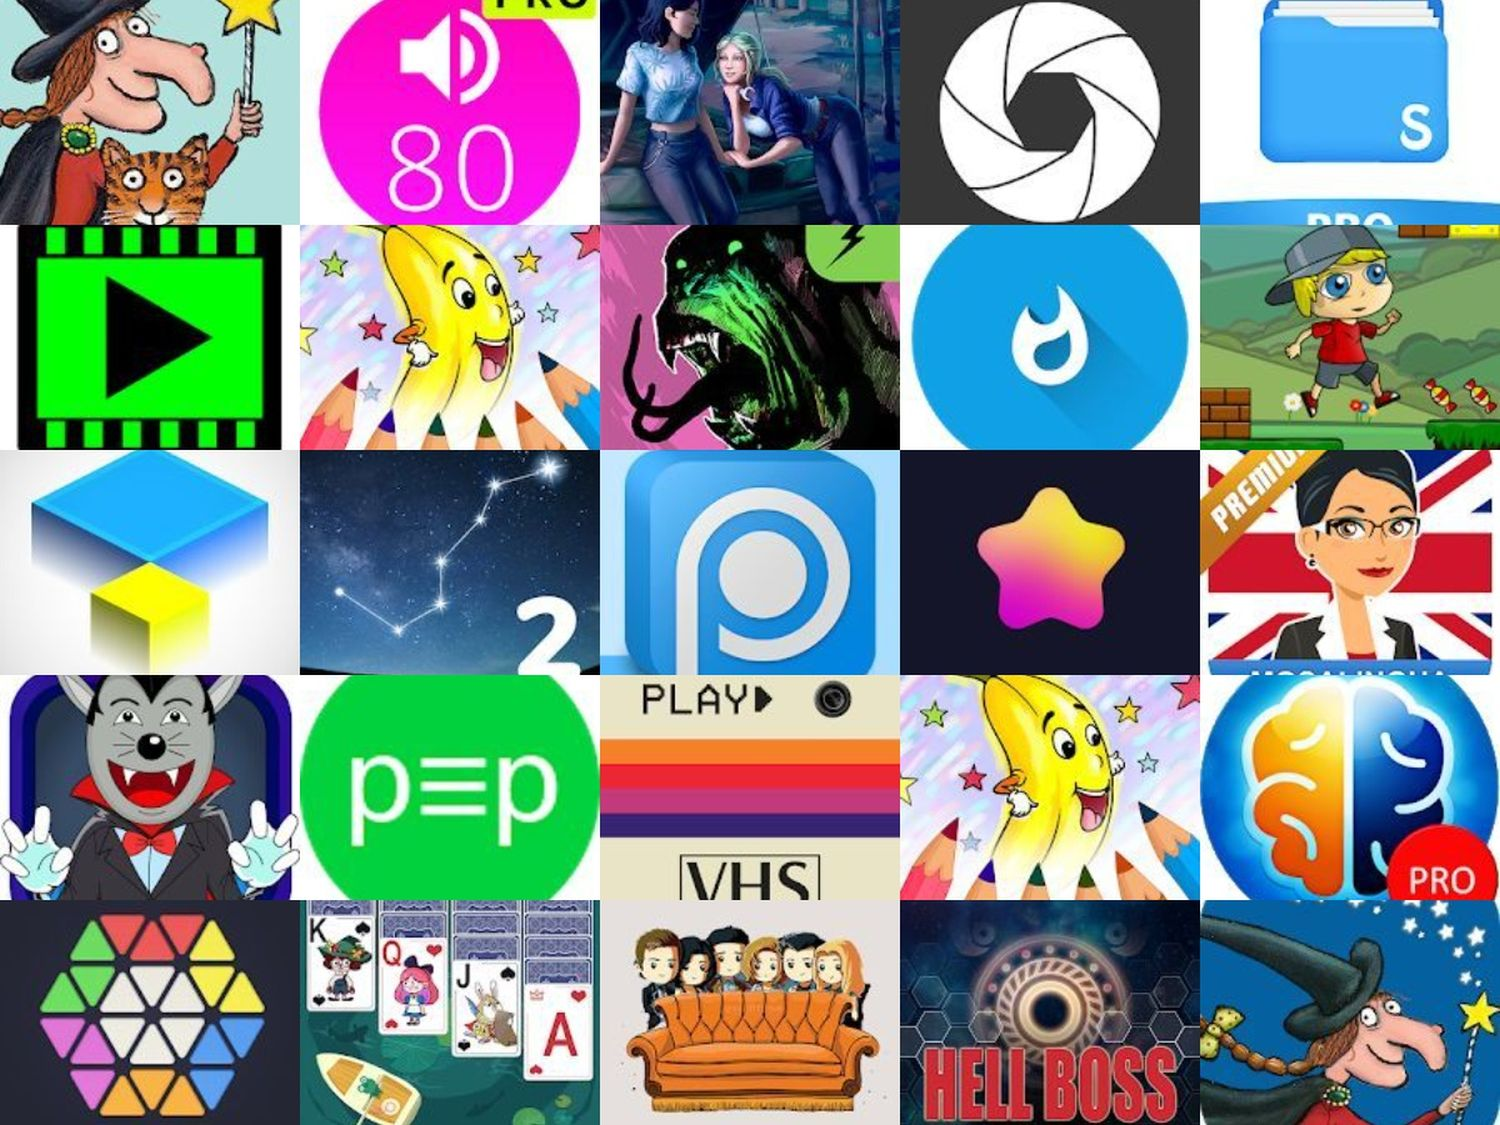 apps 29.10.2020